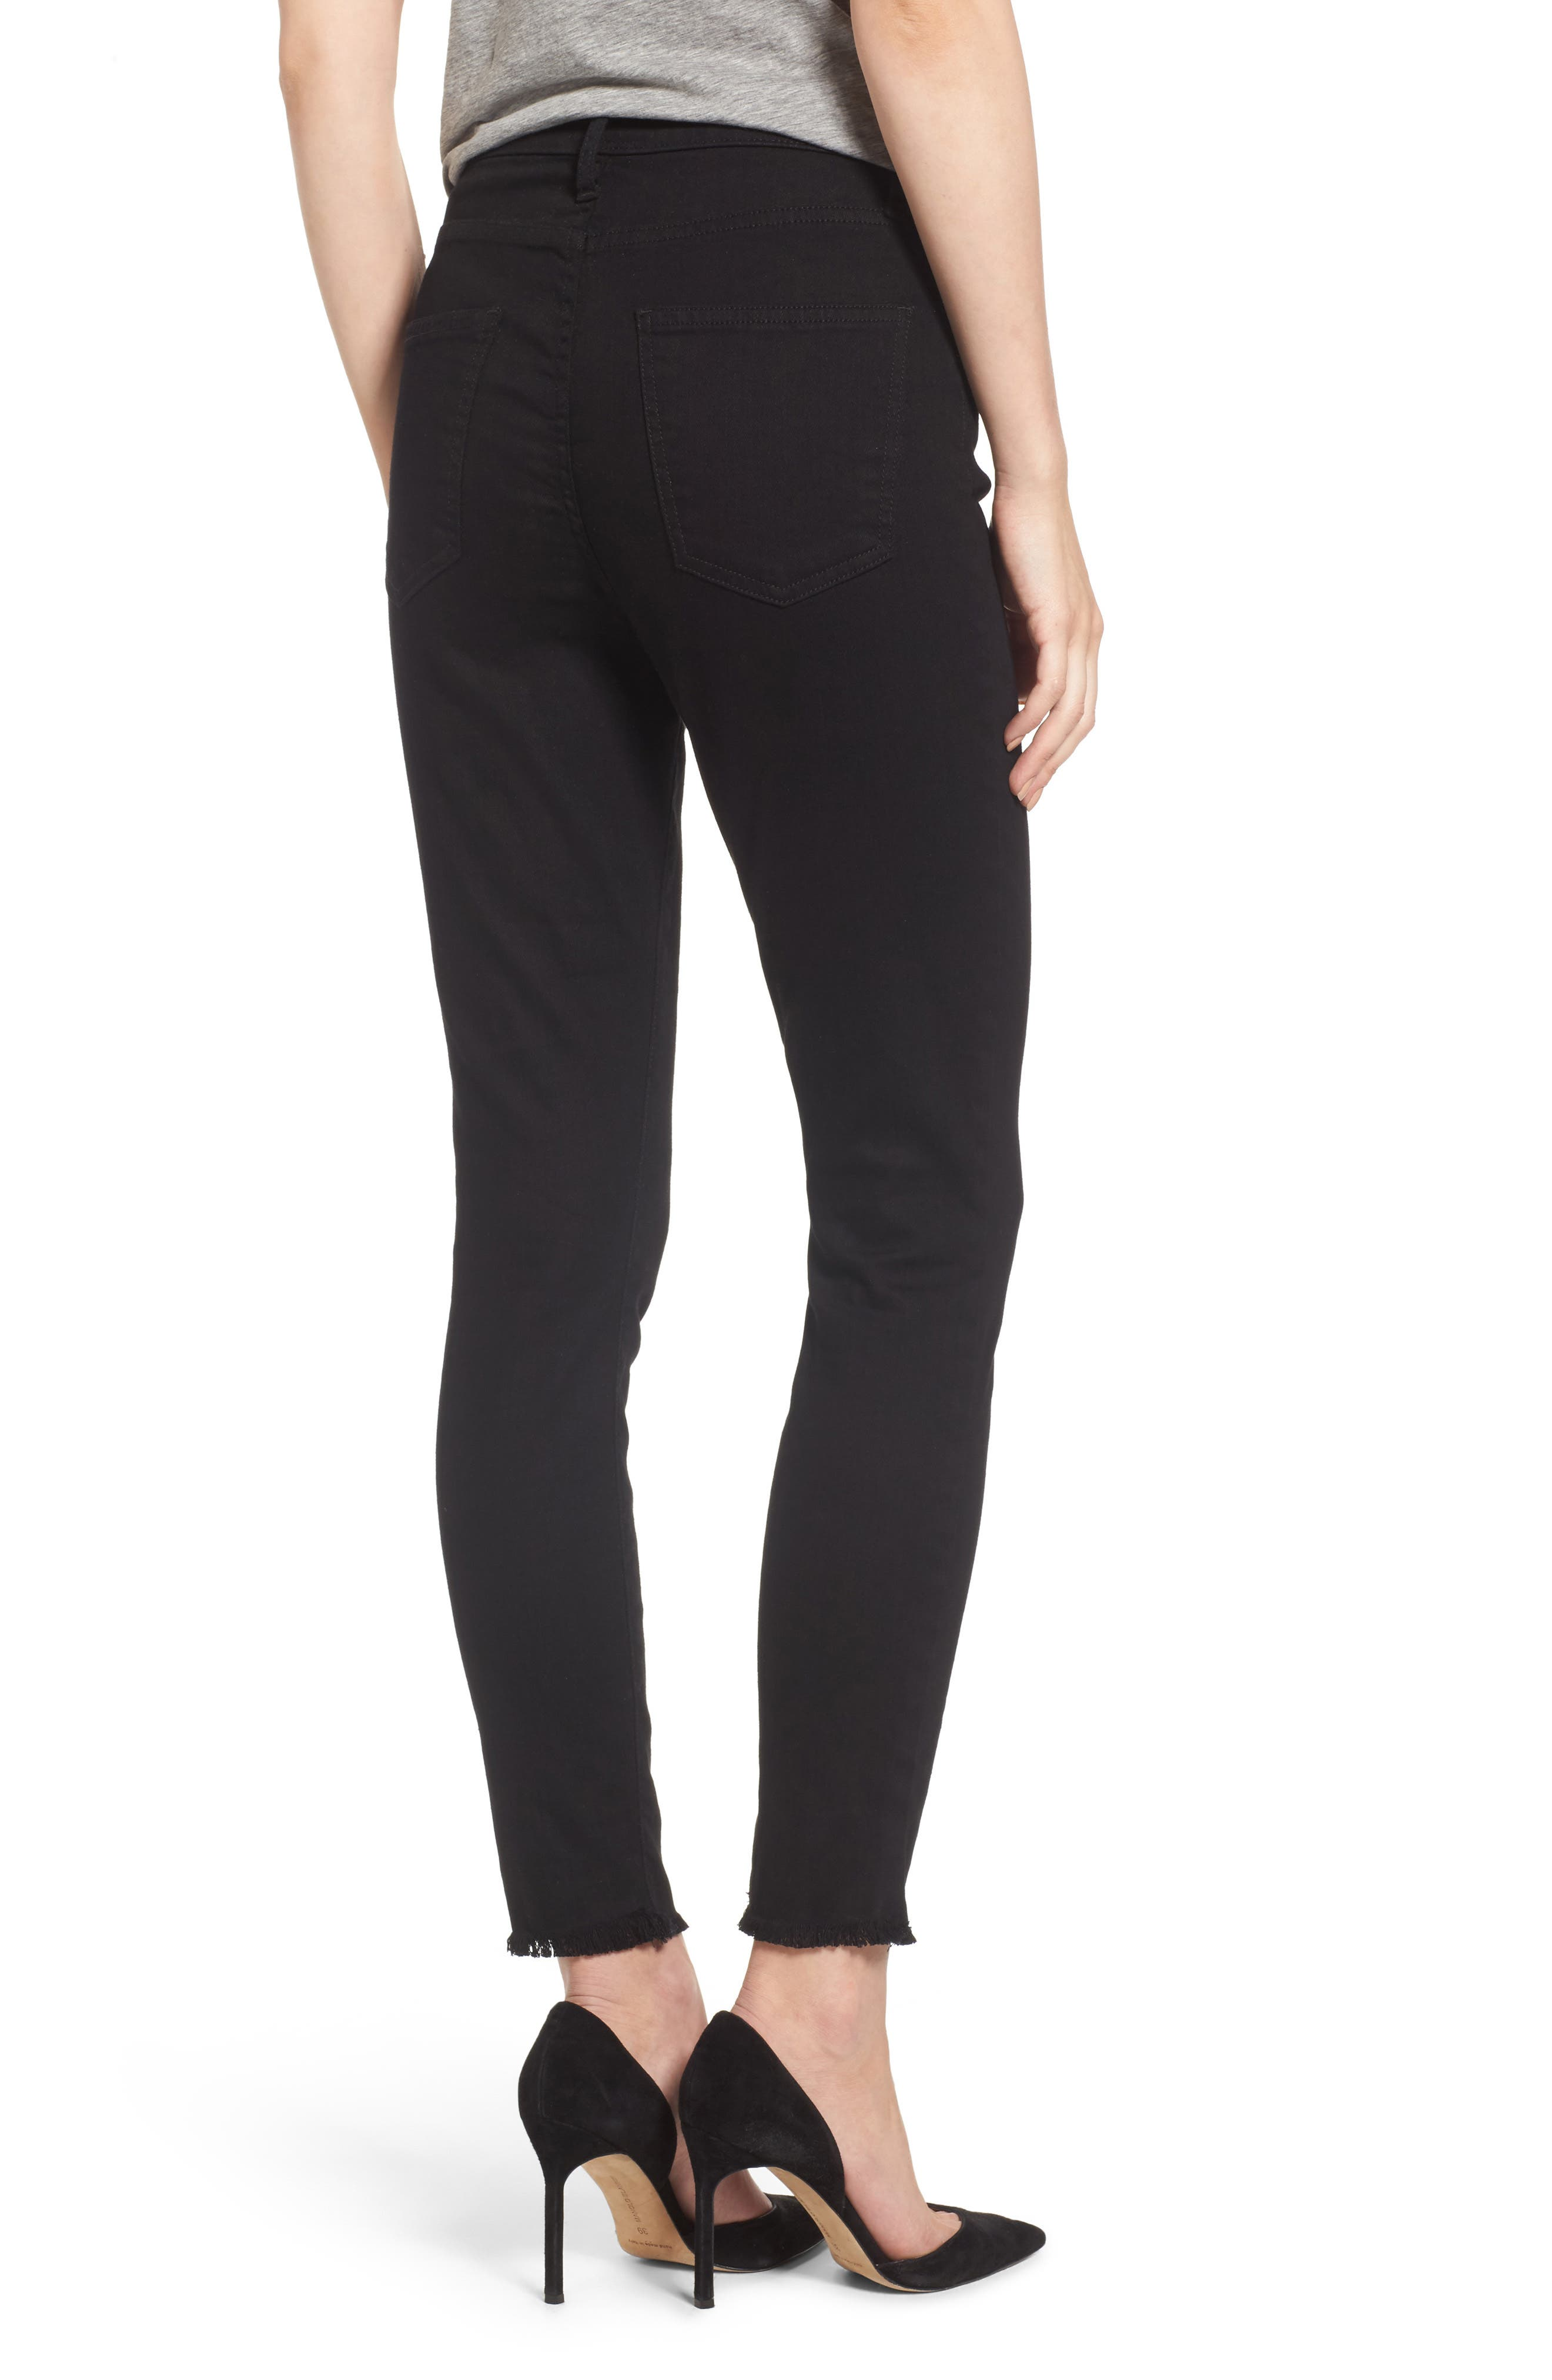 Alternate Image 2  - Current/Elliott The Super High Waist Stiletto Ankle Skinny Jeans (Jet Black)